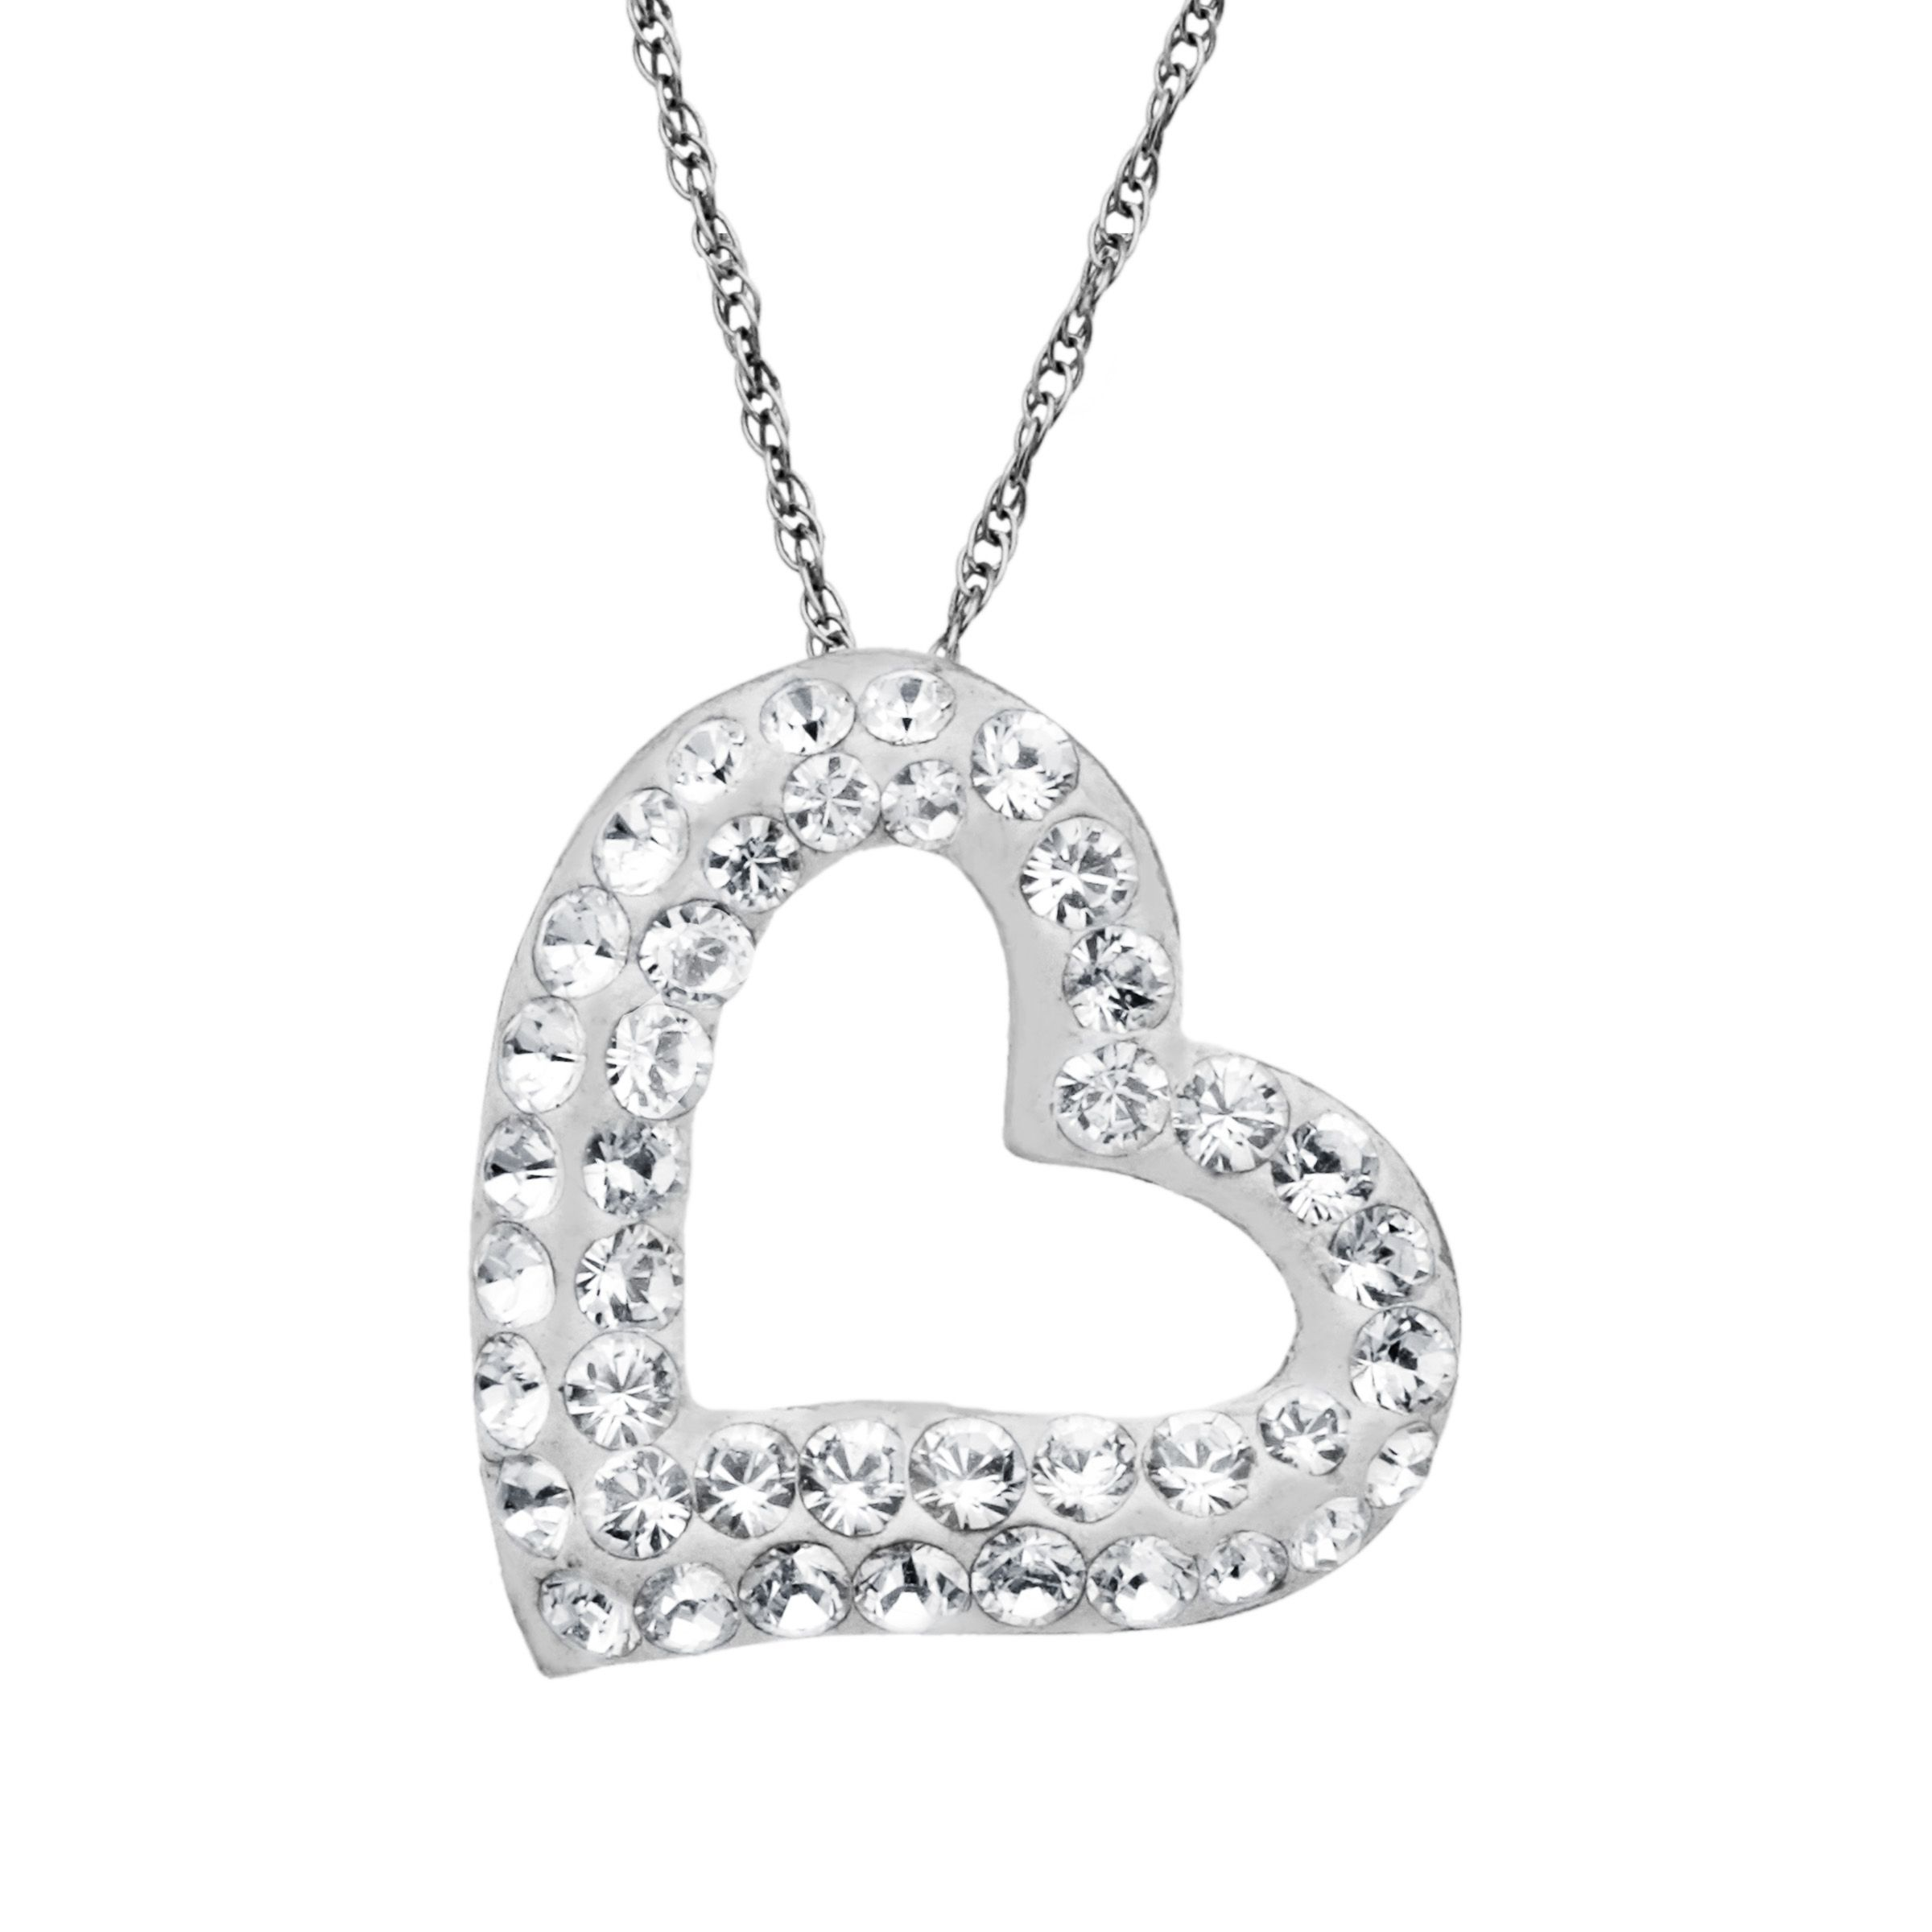 necklace introduces jewelry exquisite heart jewelers open seymour jane kay hearts